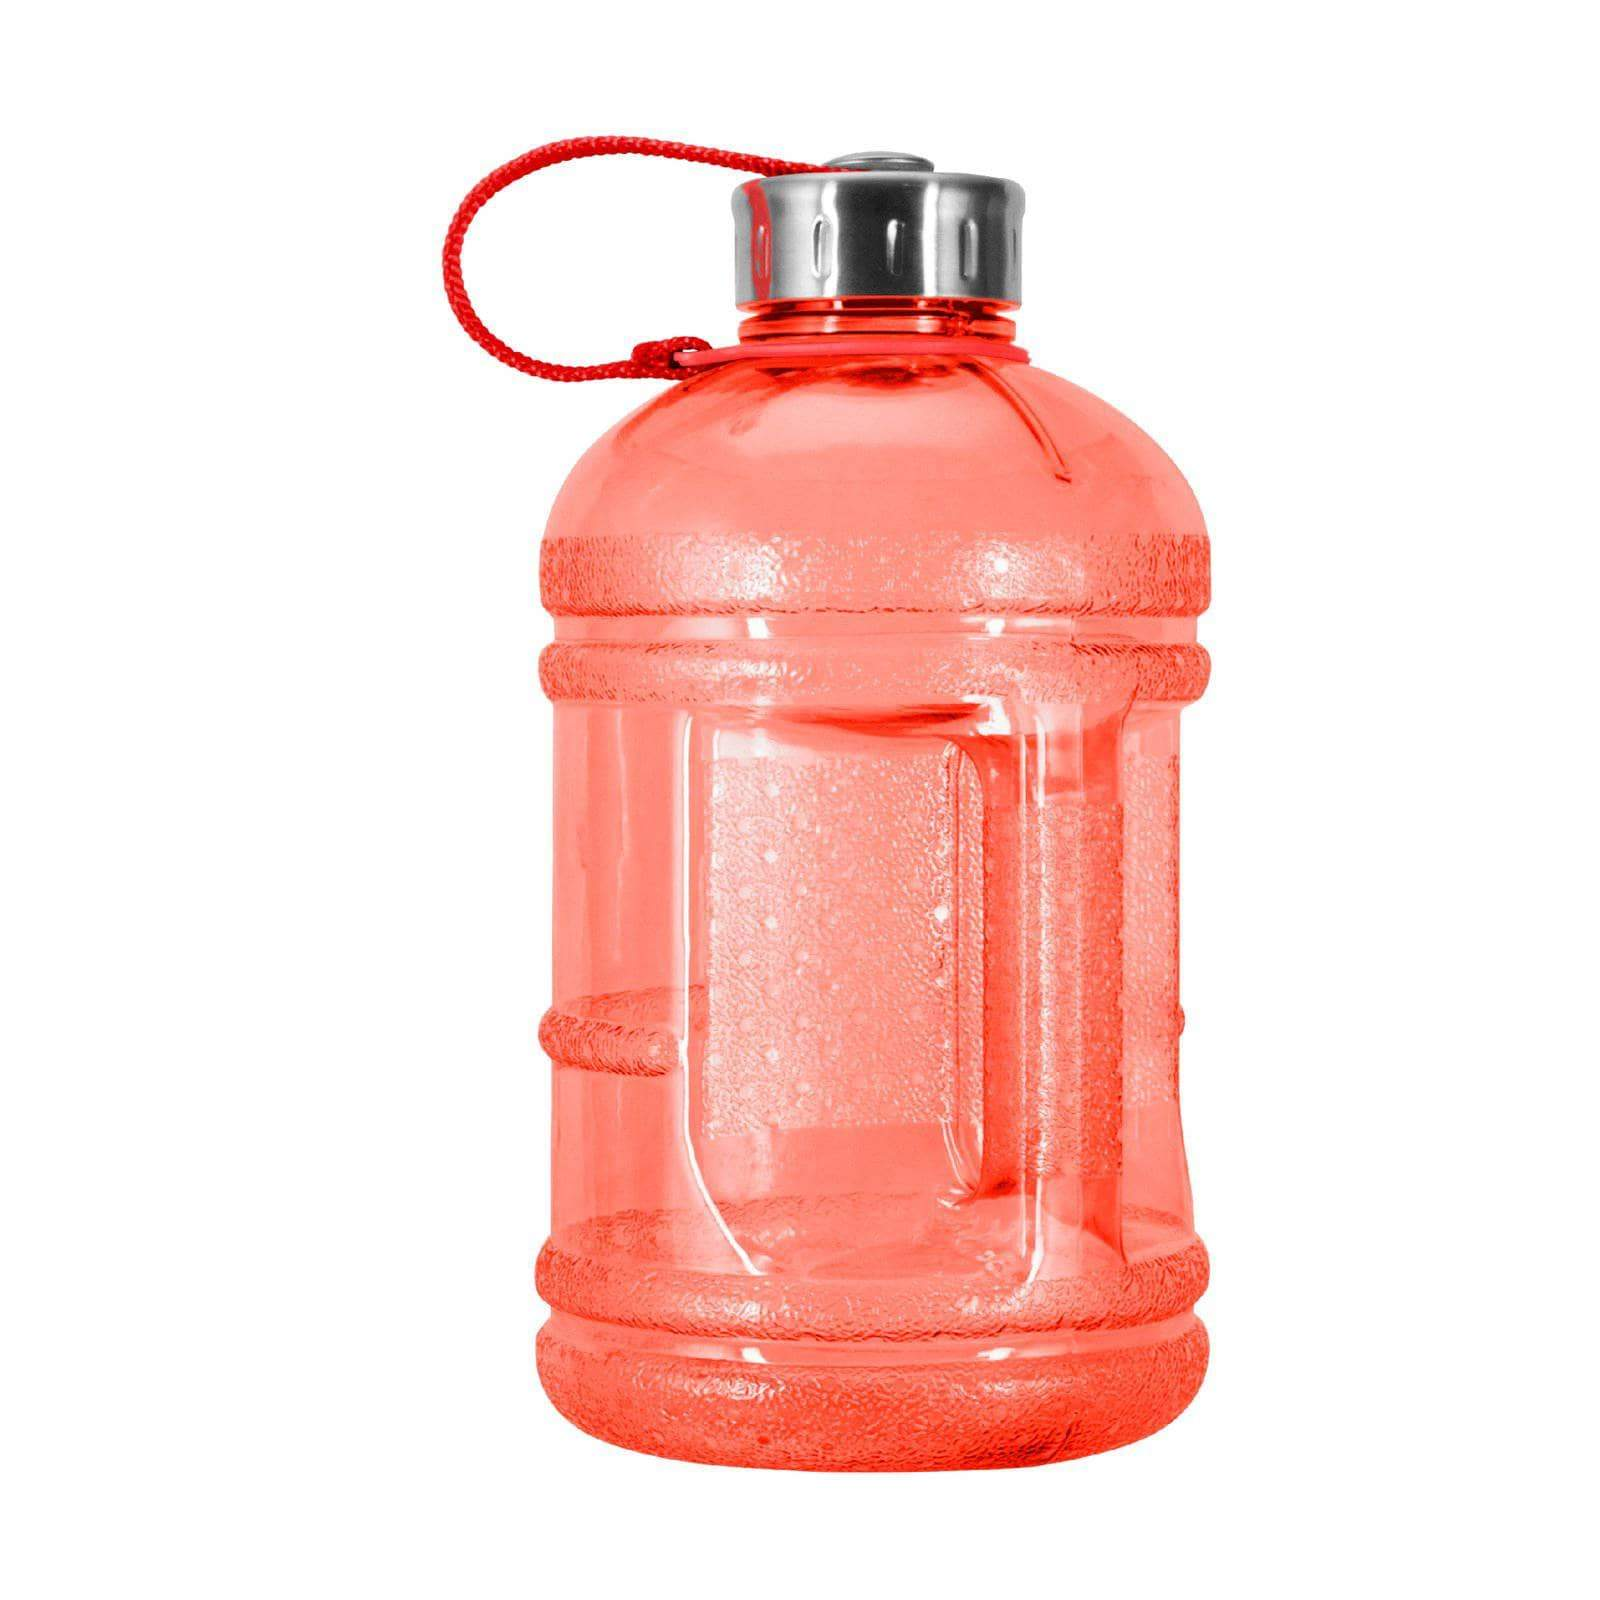 Geo Bottles Bottles Red 1/2 Gallon BPA FREE Plastic Water Bottle w/ 48mm Steel Cap